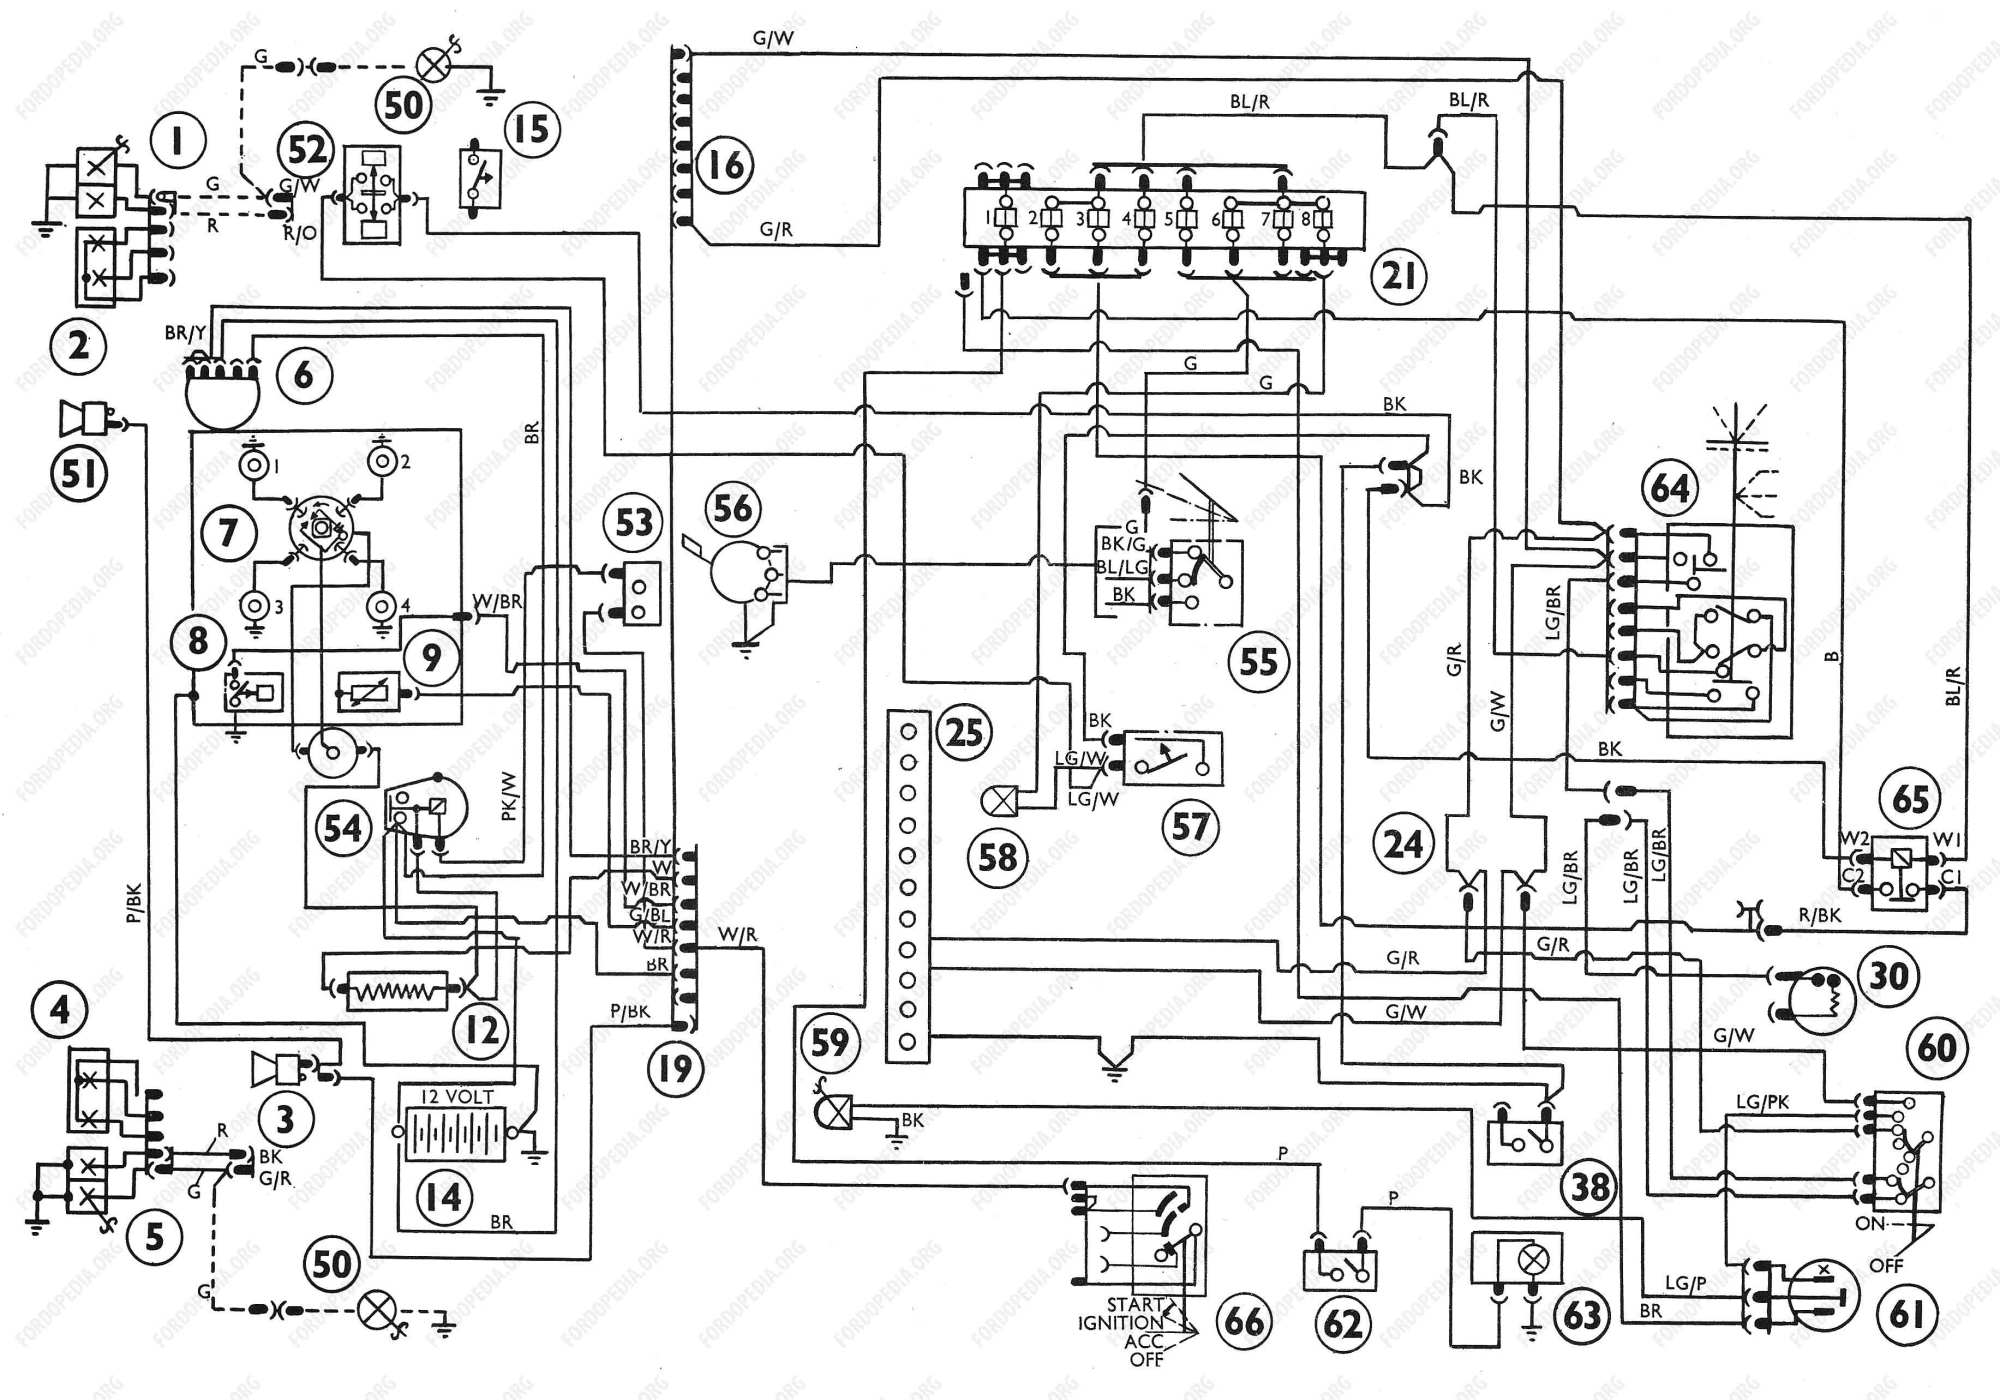 hight resolution of download full size image 3666x2567 490 kb wiring diagrams ford transit